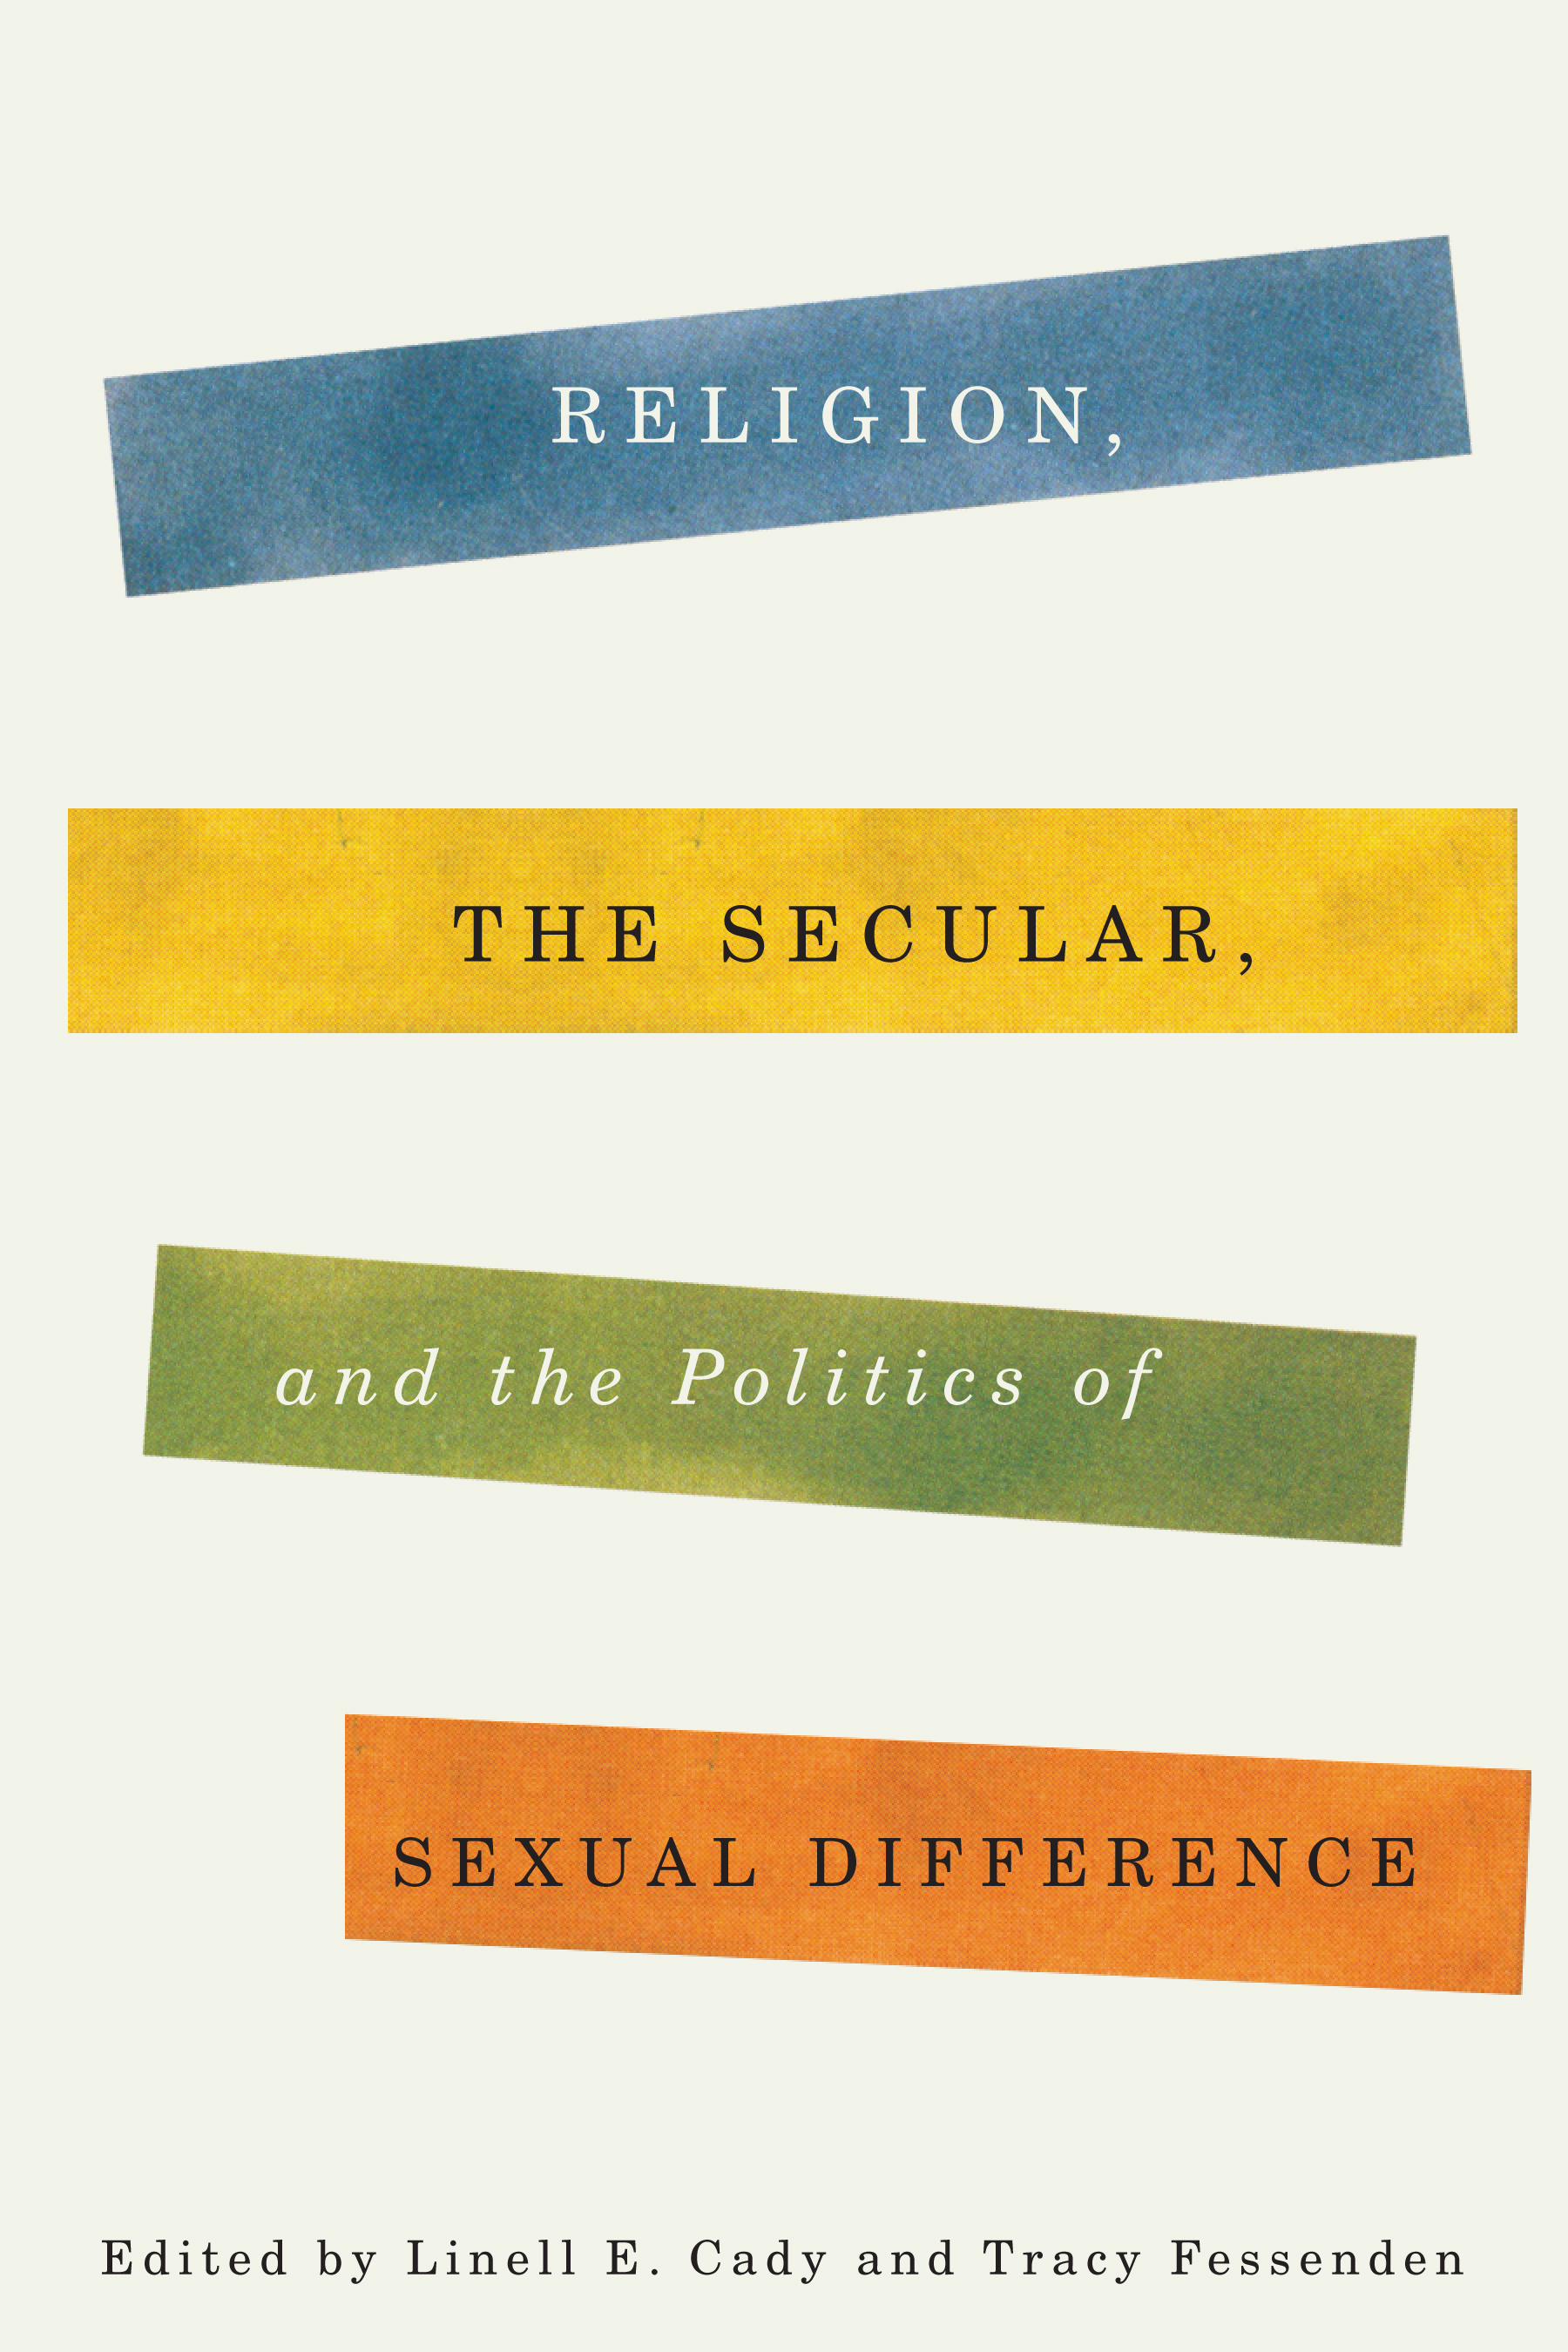 new book questions conventional wisdom on religion secularism full image